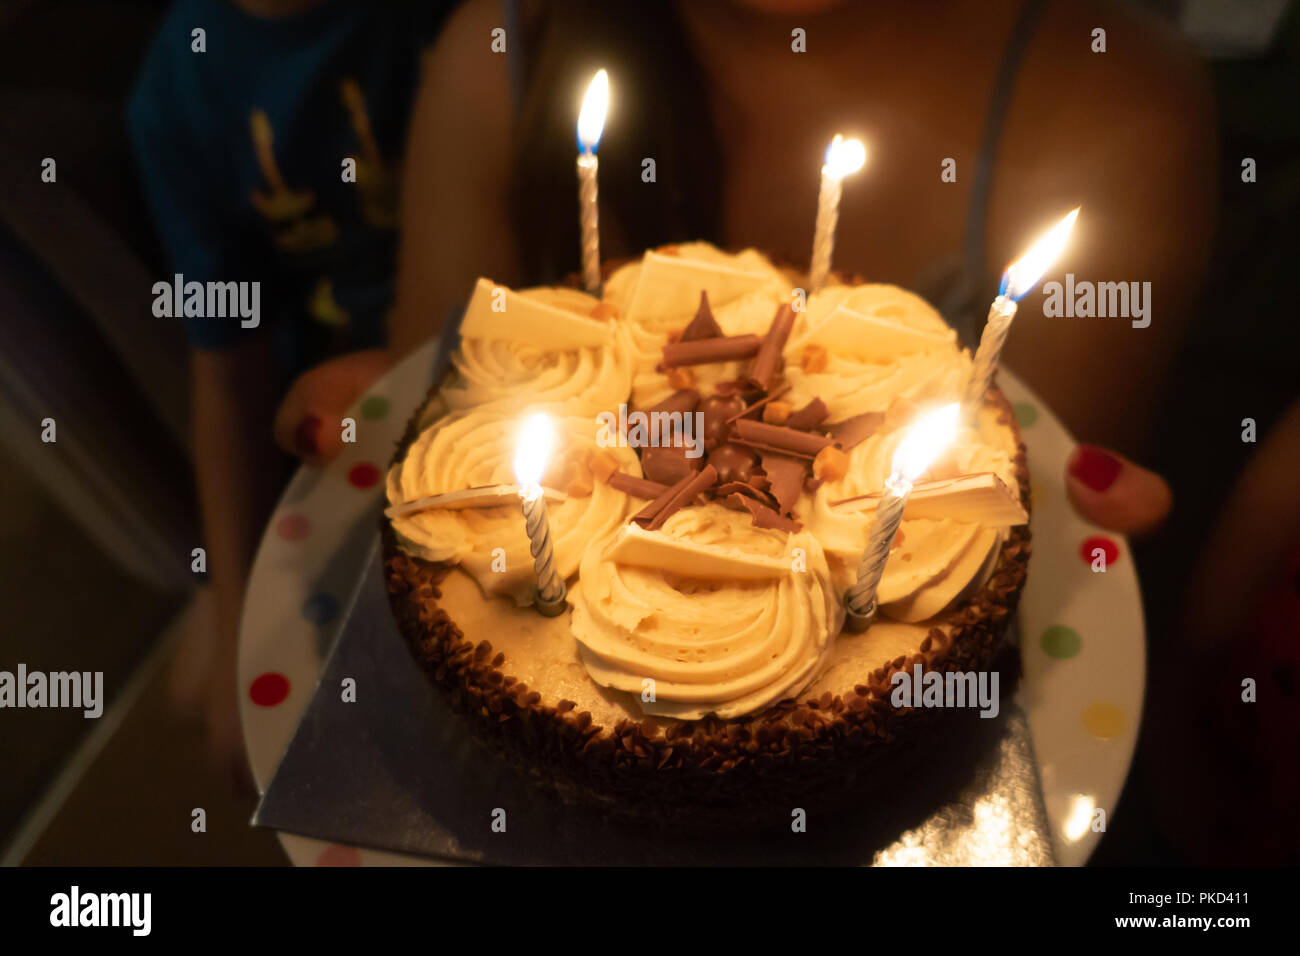 A Close Up View Of Chocolate Birthday Cake Which Has Candles Burning On Top